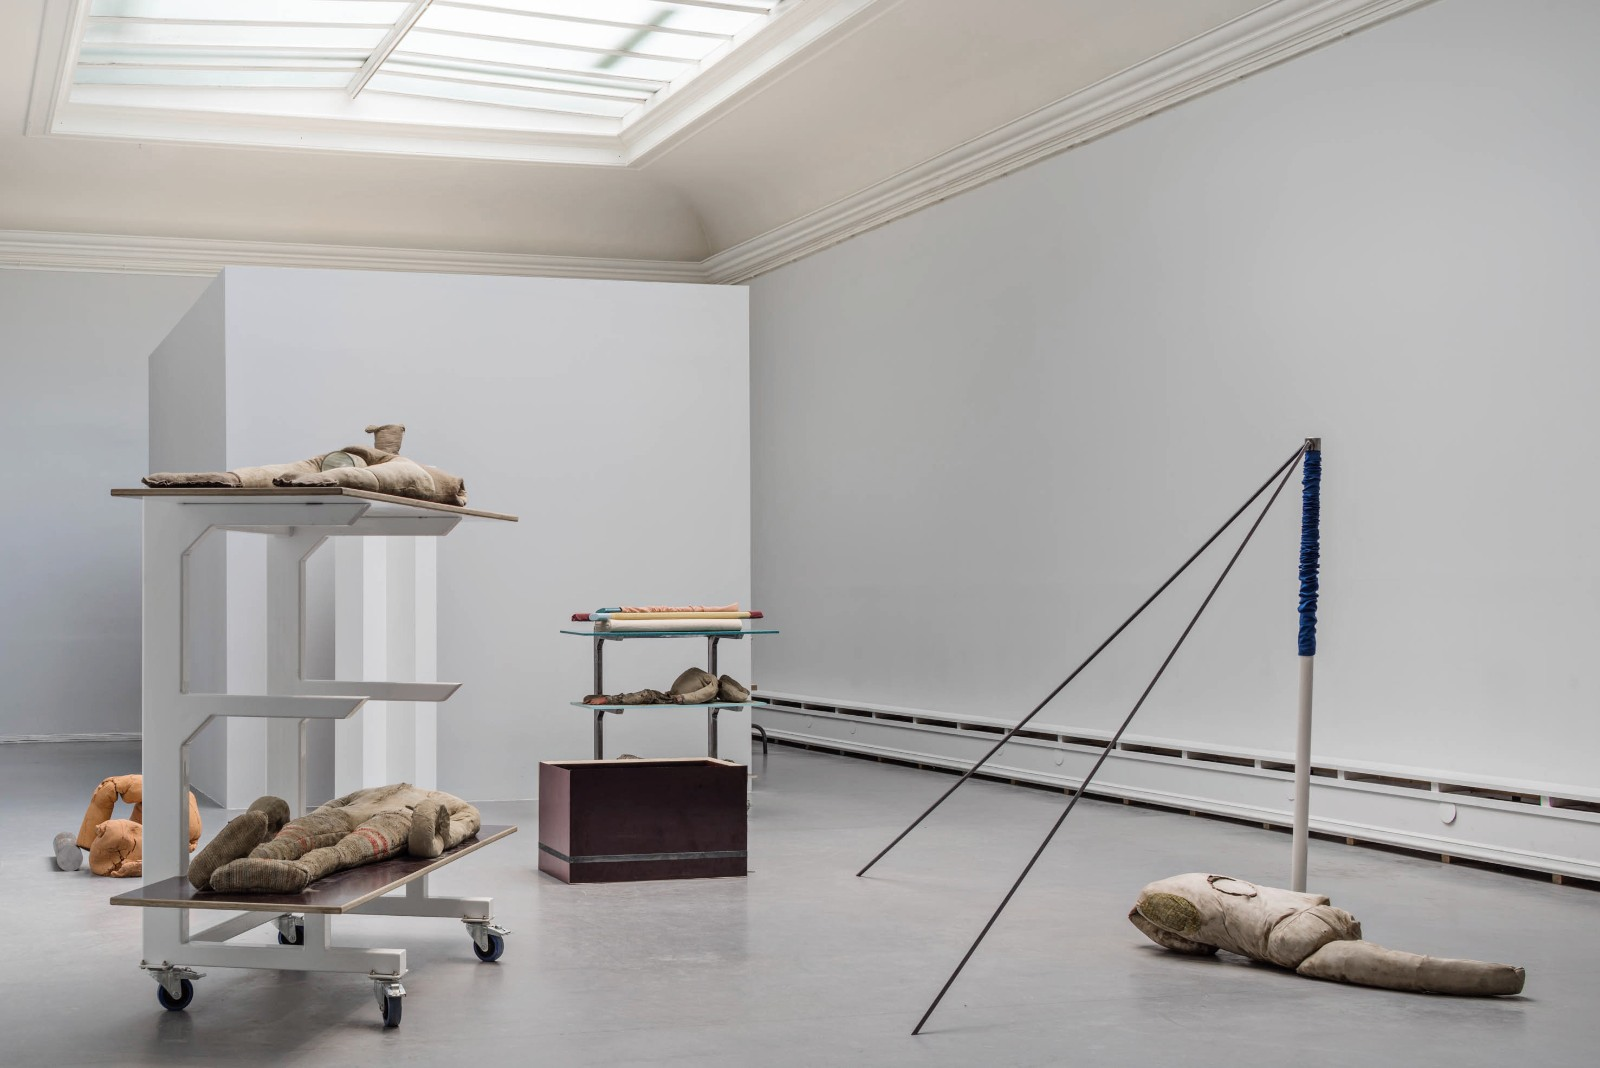 Installation view, I dream of Meadows, Examination show (group), The Royal Art Academy, Stockholm, 2015